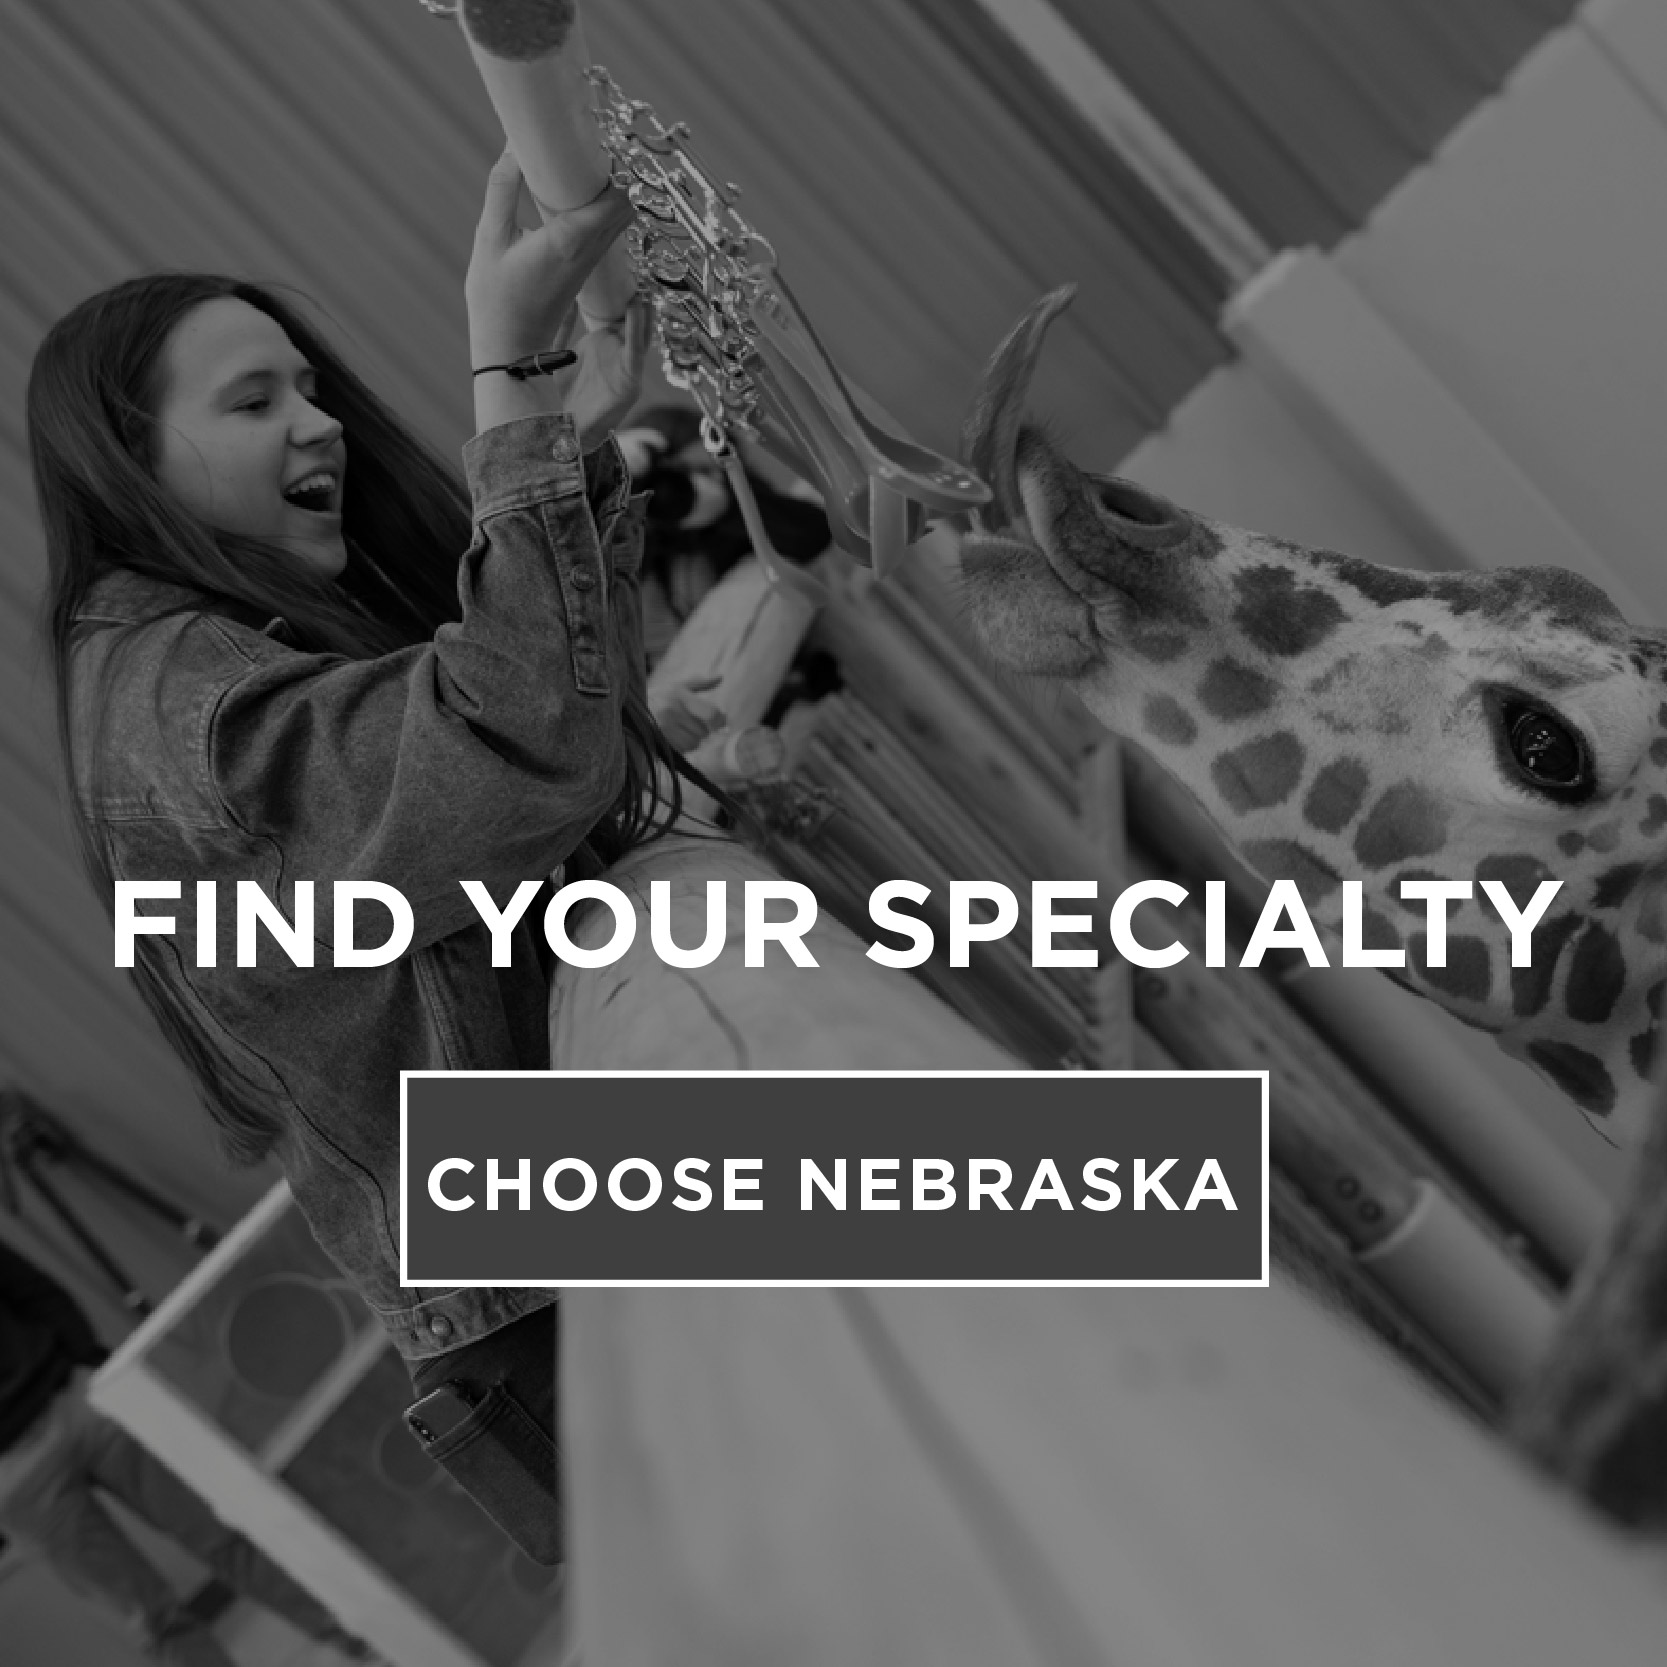 Choose Nebraska